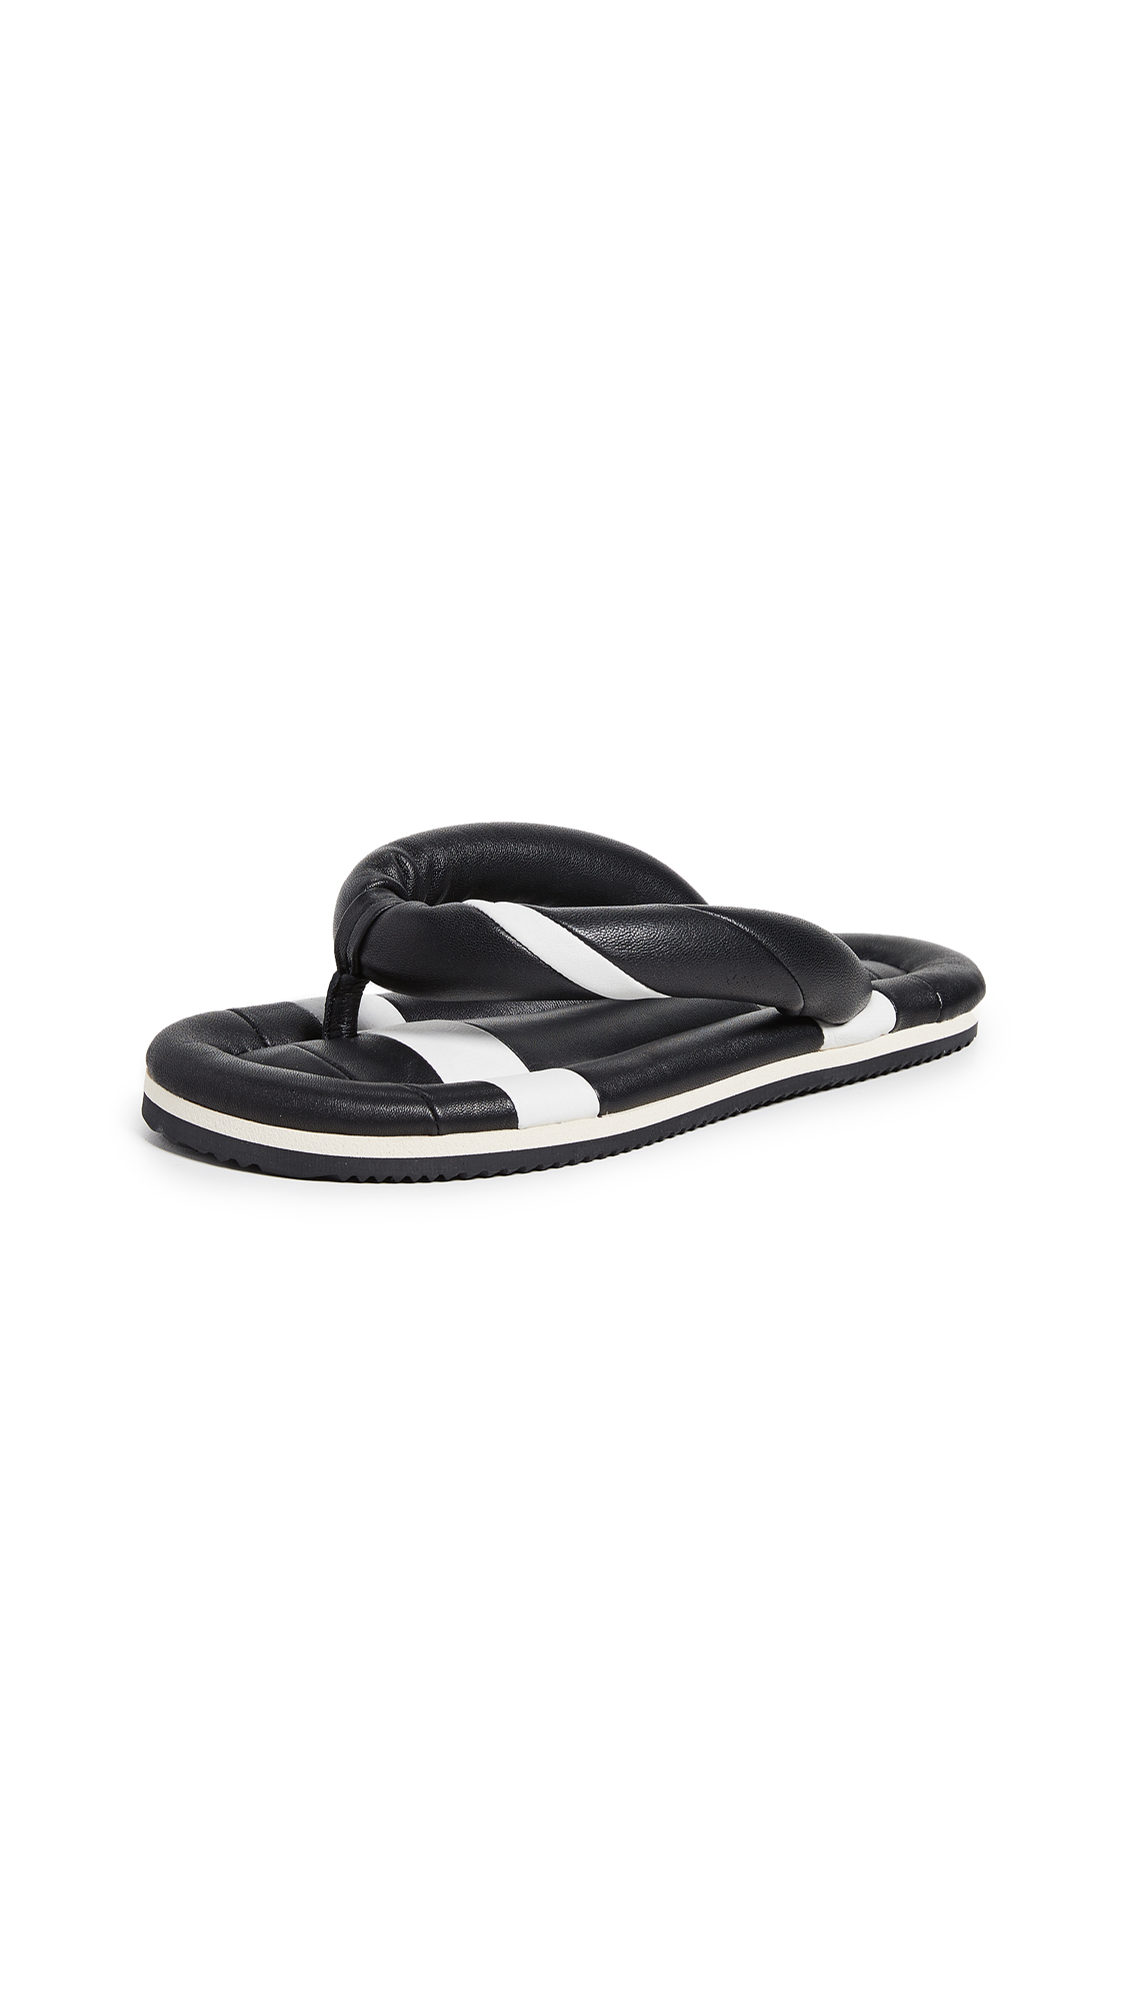 Isabel Marant Ecksen Thong Sandals - Black